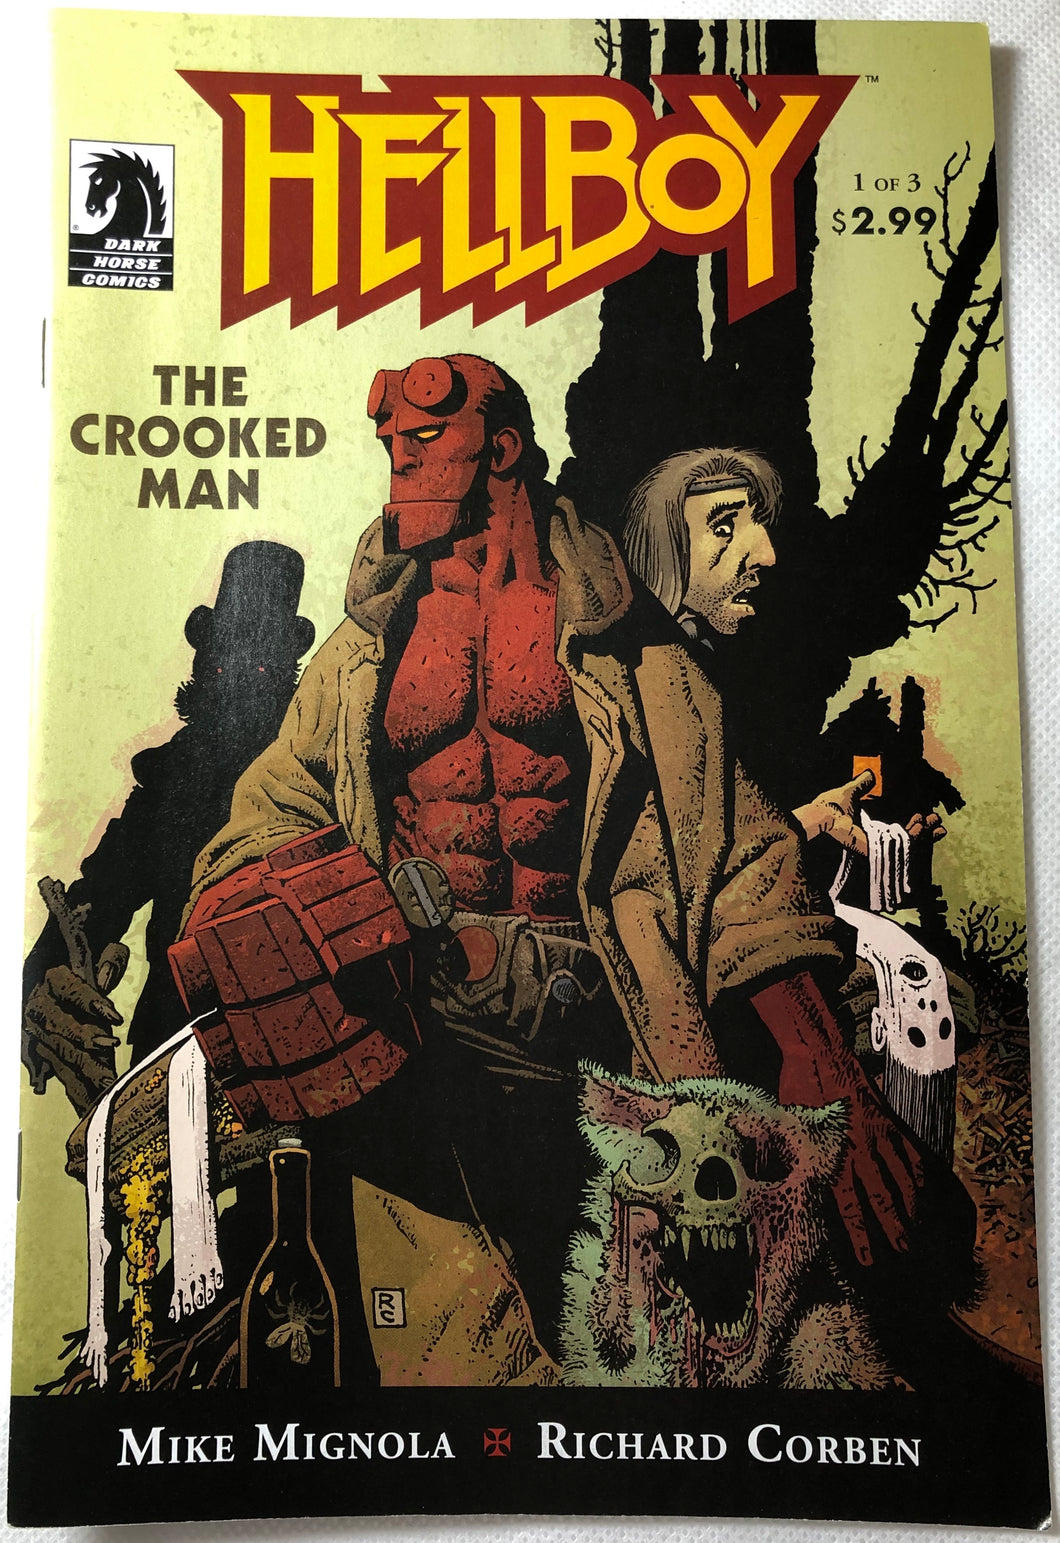 Hellboy The Crooked Man 1 of 3 - Demize Collectibles LTD